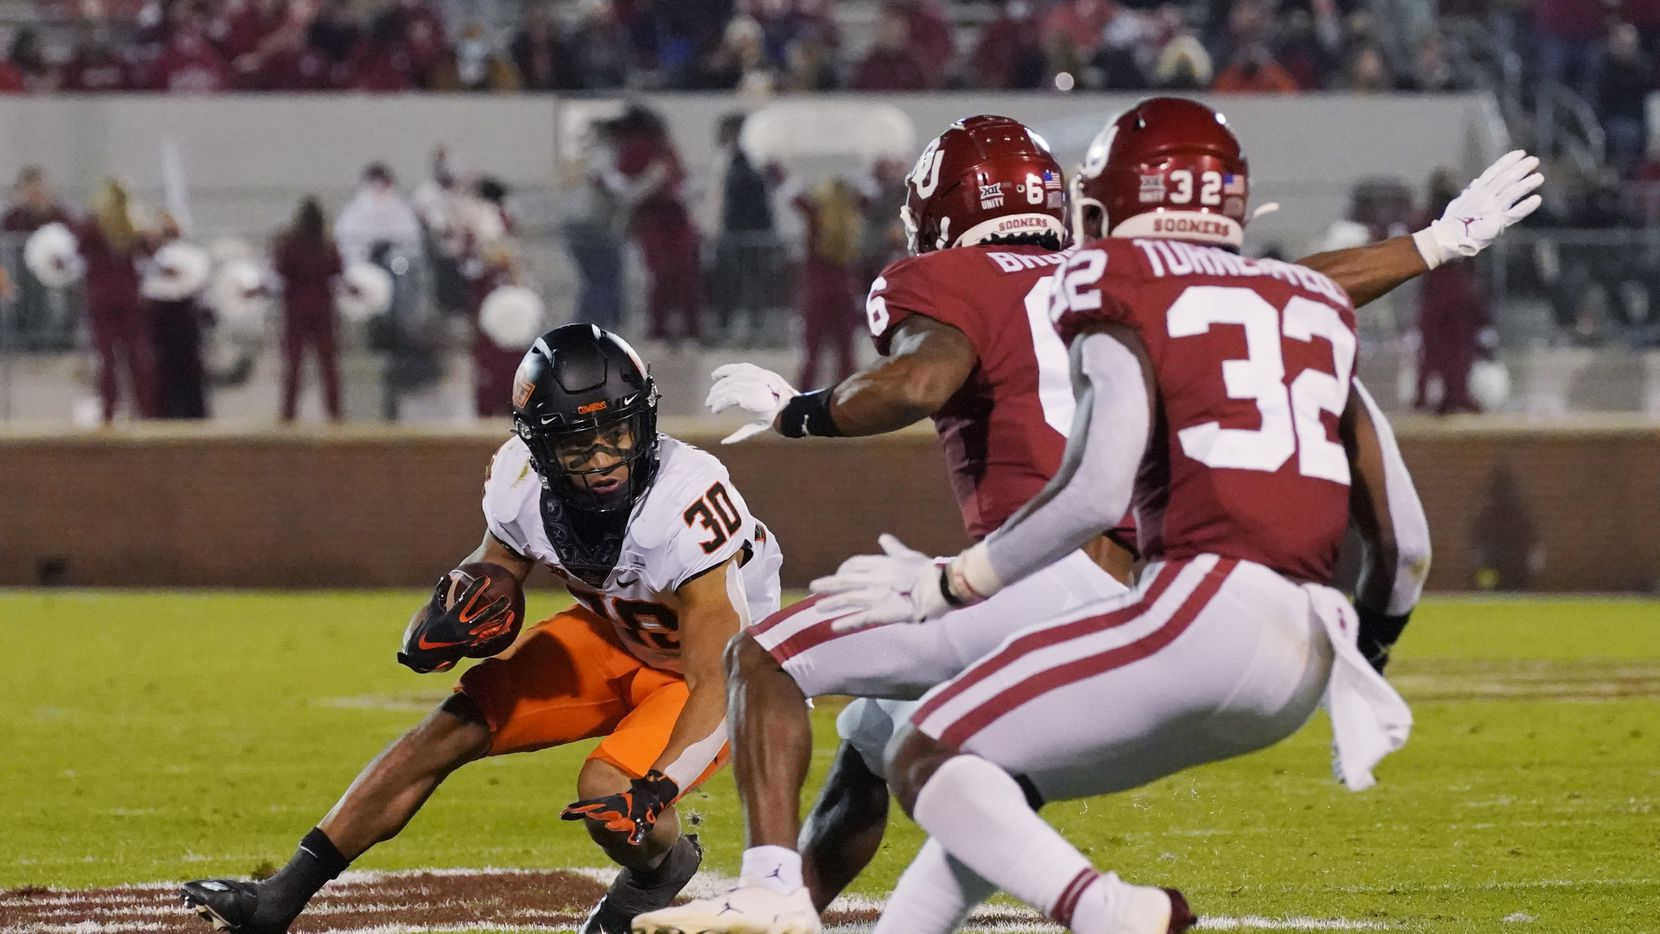 Oklahoma State running back Chuba Hubbard (30) slips in front of Oklahoma cornerback Tre Brown (6) and safety Delarrin Turner-Yellan (32) during the first half of an NCAA college football game in Norman, Okla., Saturday, Nov. 21, 2020. (AP Photo/Sue Ogrocki)